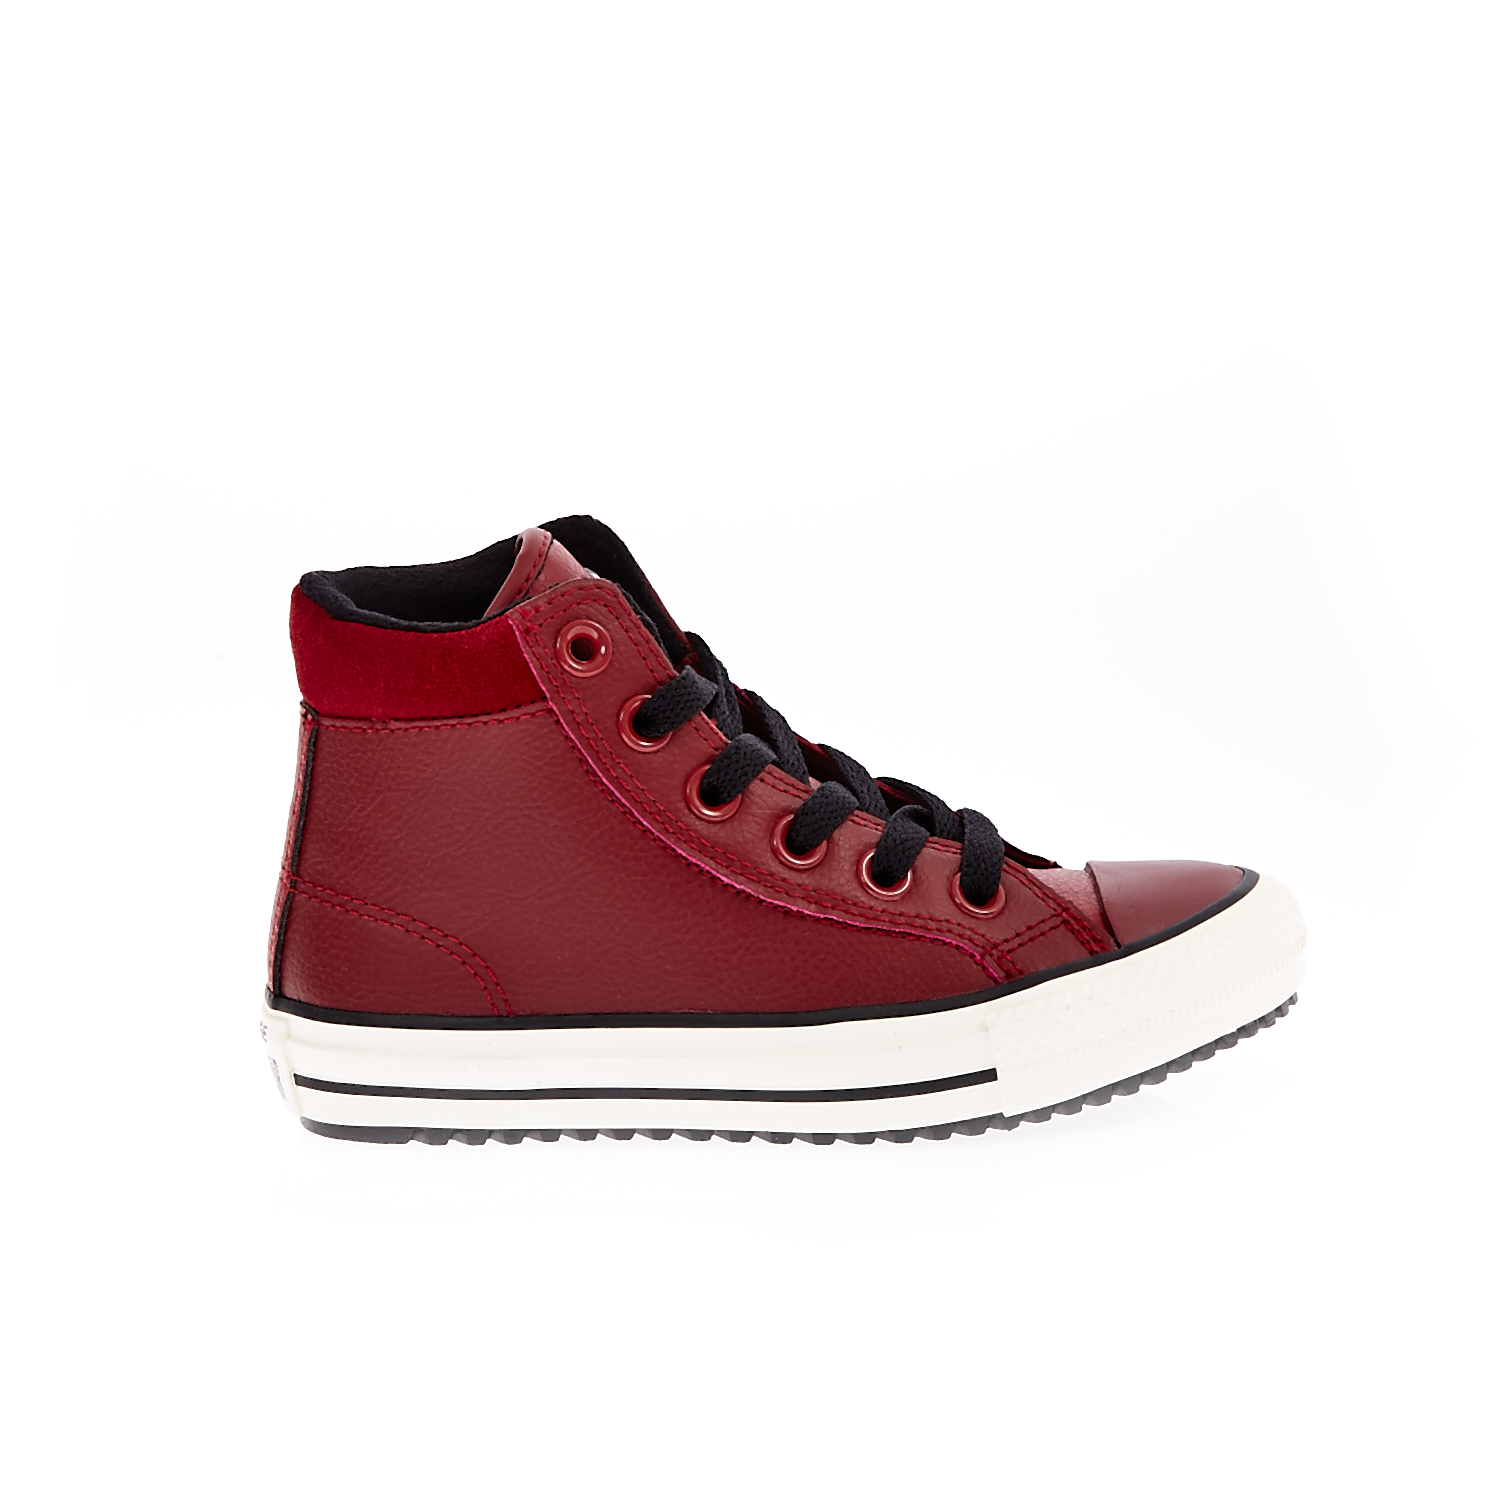 CONVERSE – Παιδικά μποτάκια Chuck Taylor All Star μπορντώ